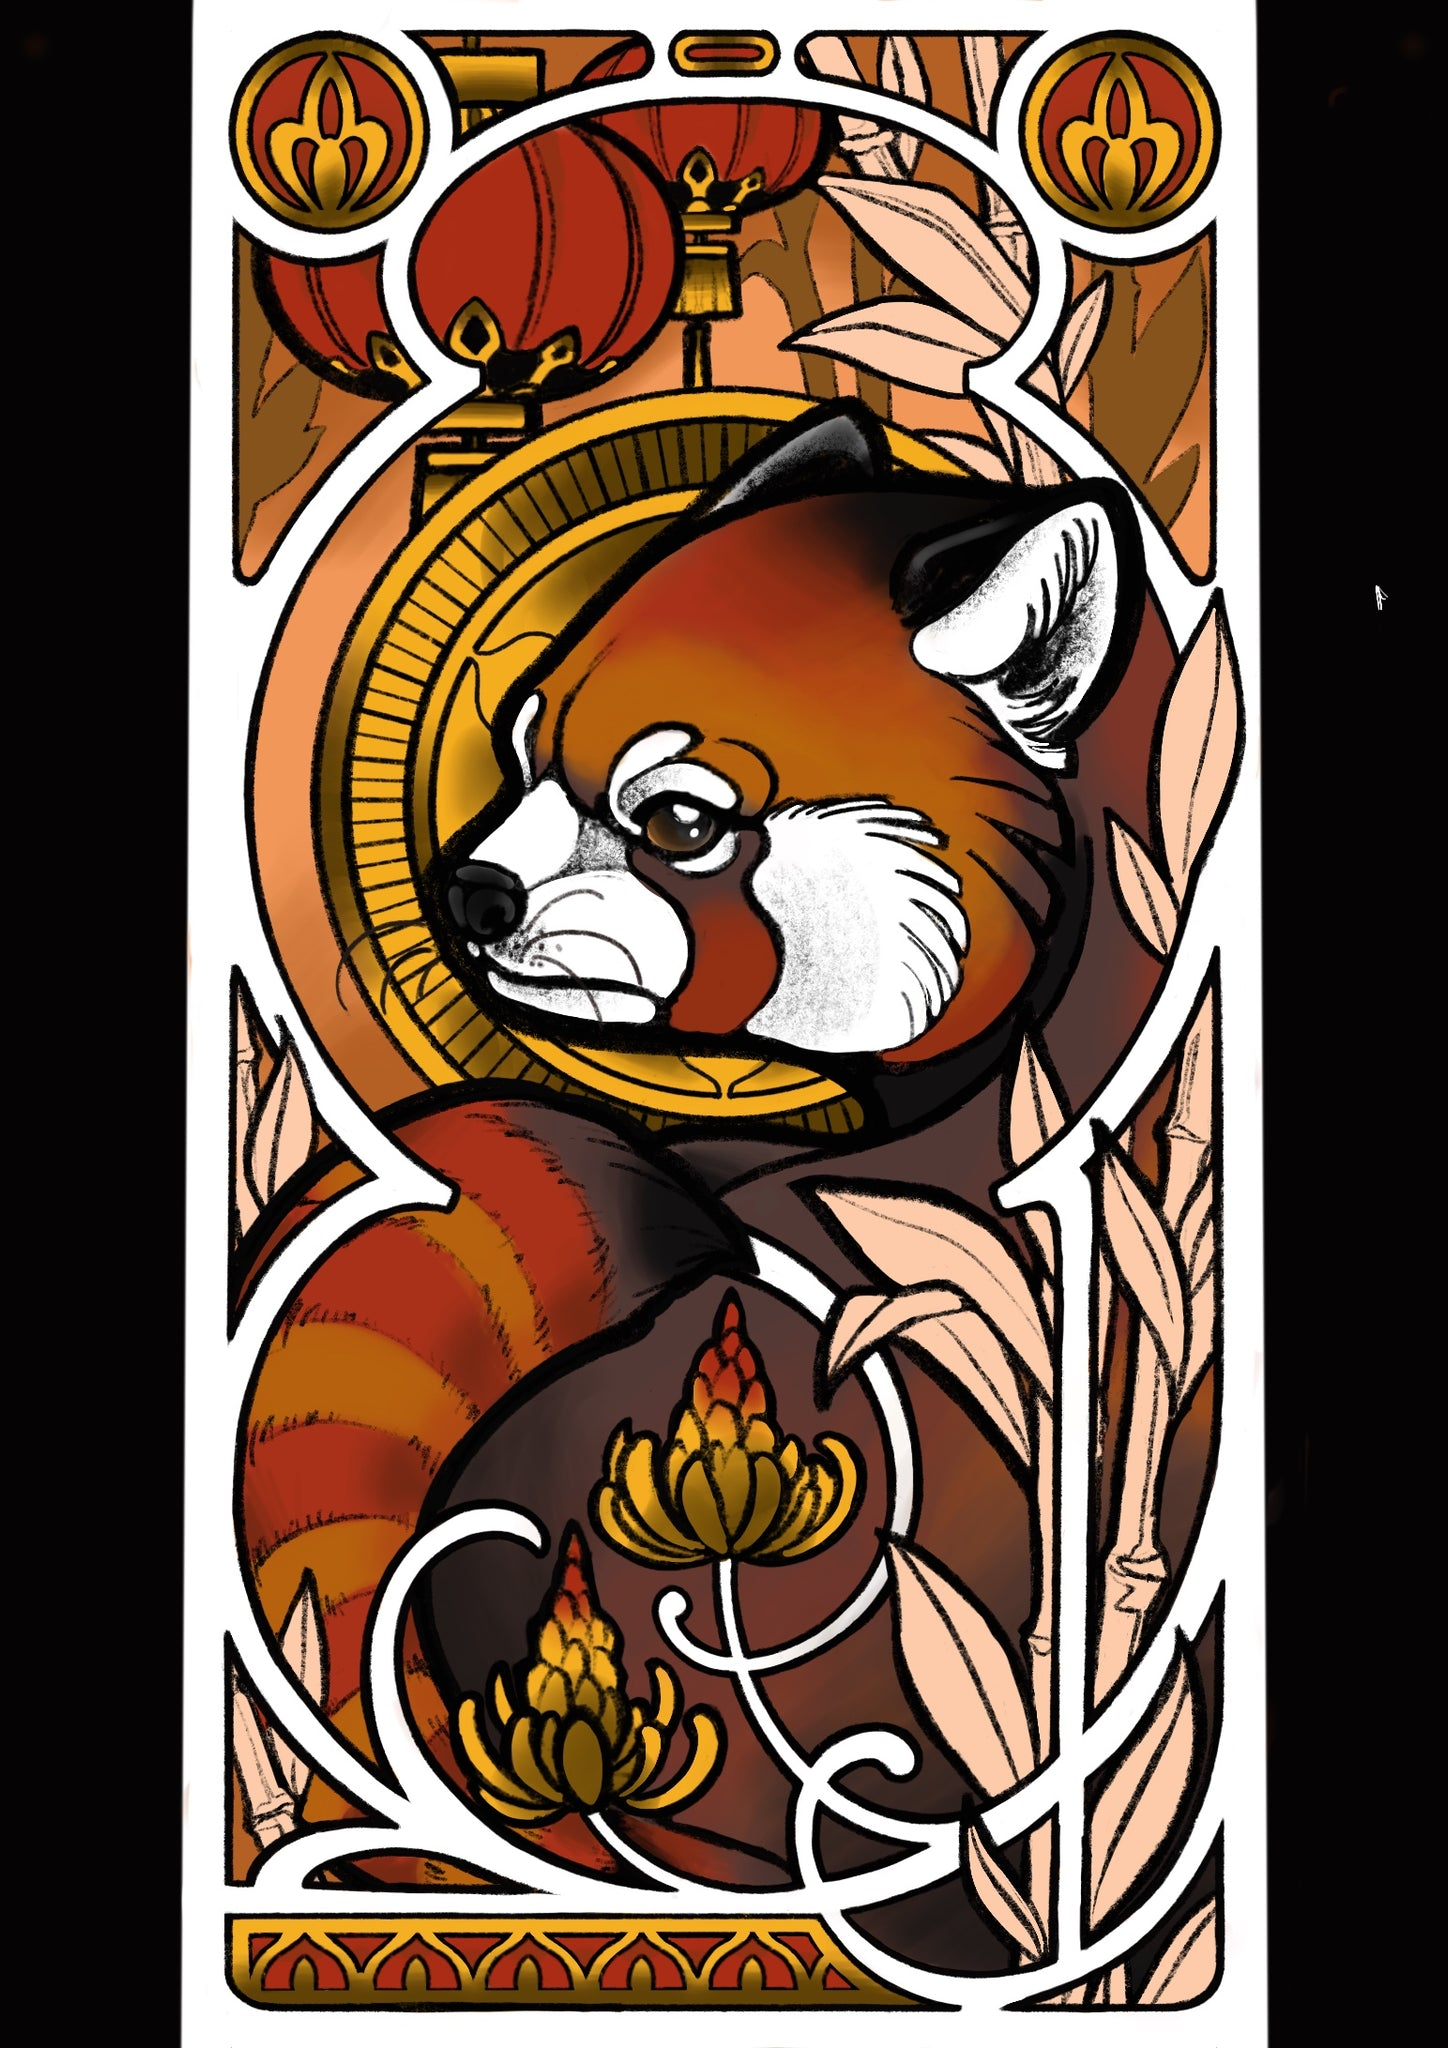 Red Panda - Print by Nina Noa